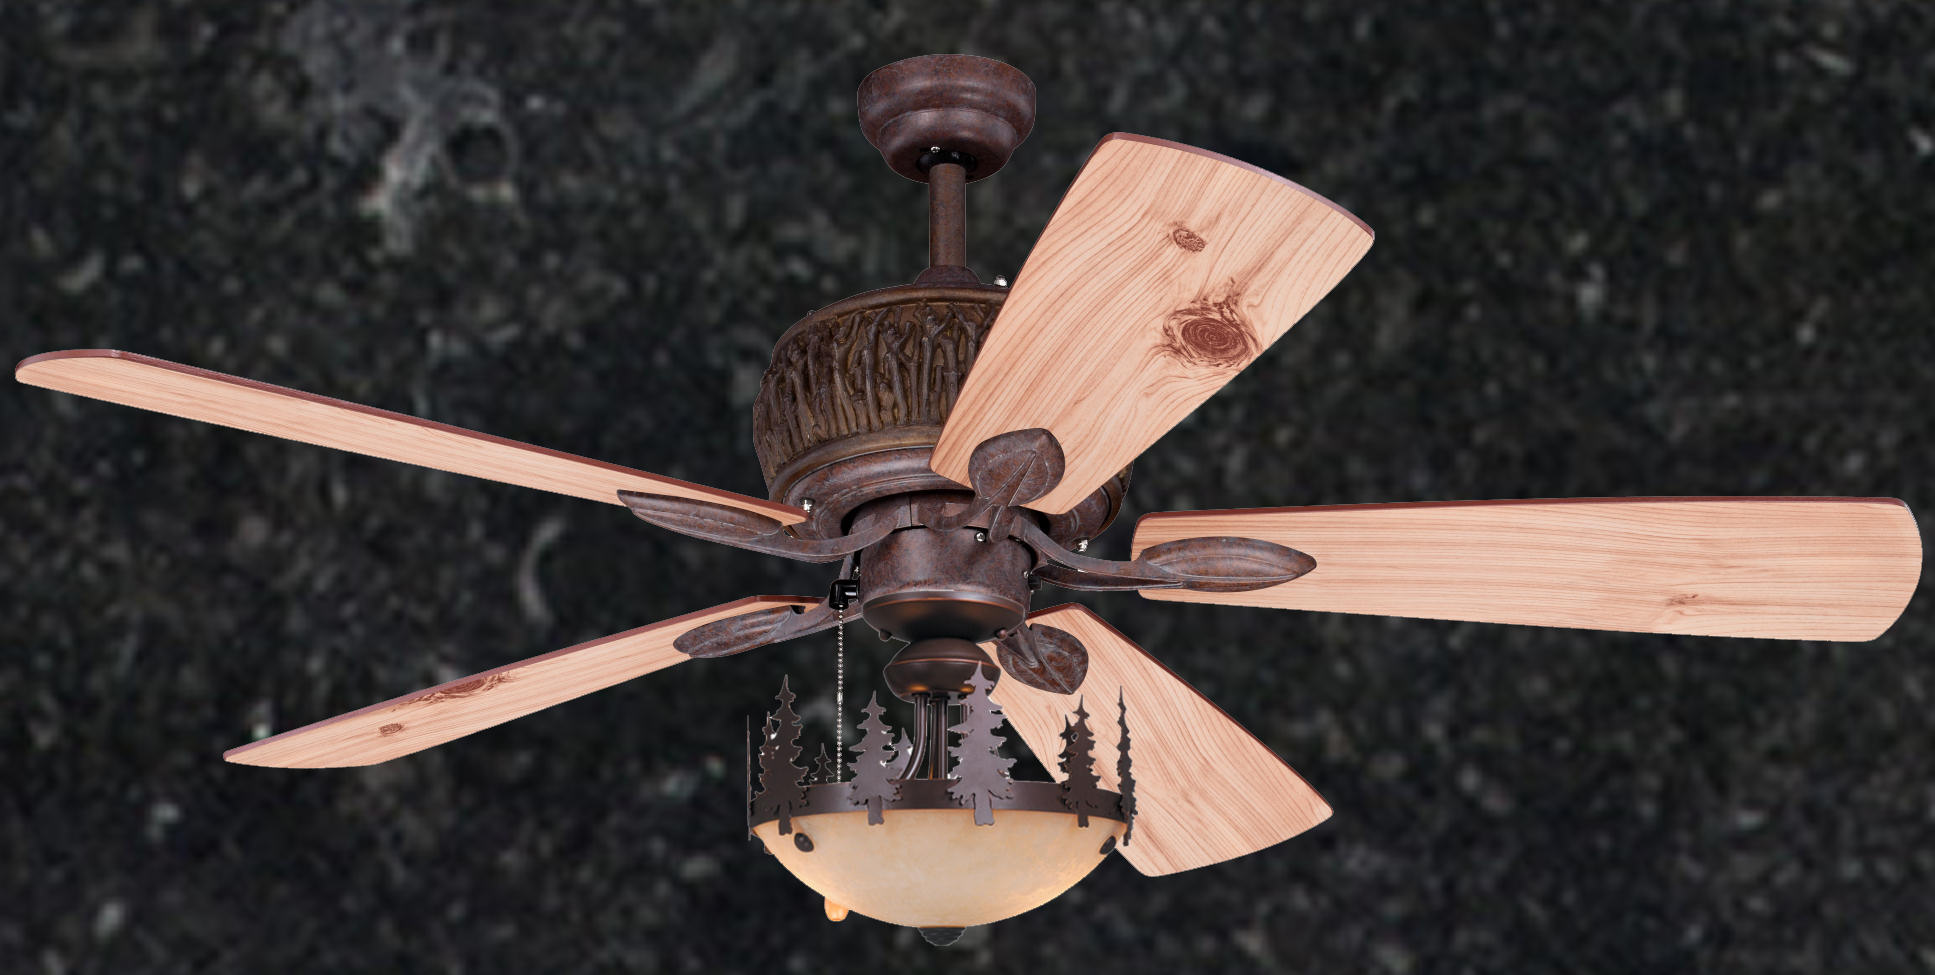 Mountain Knotty Home Rustic Ceiling Fan Hover To Zoom